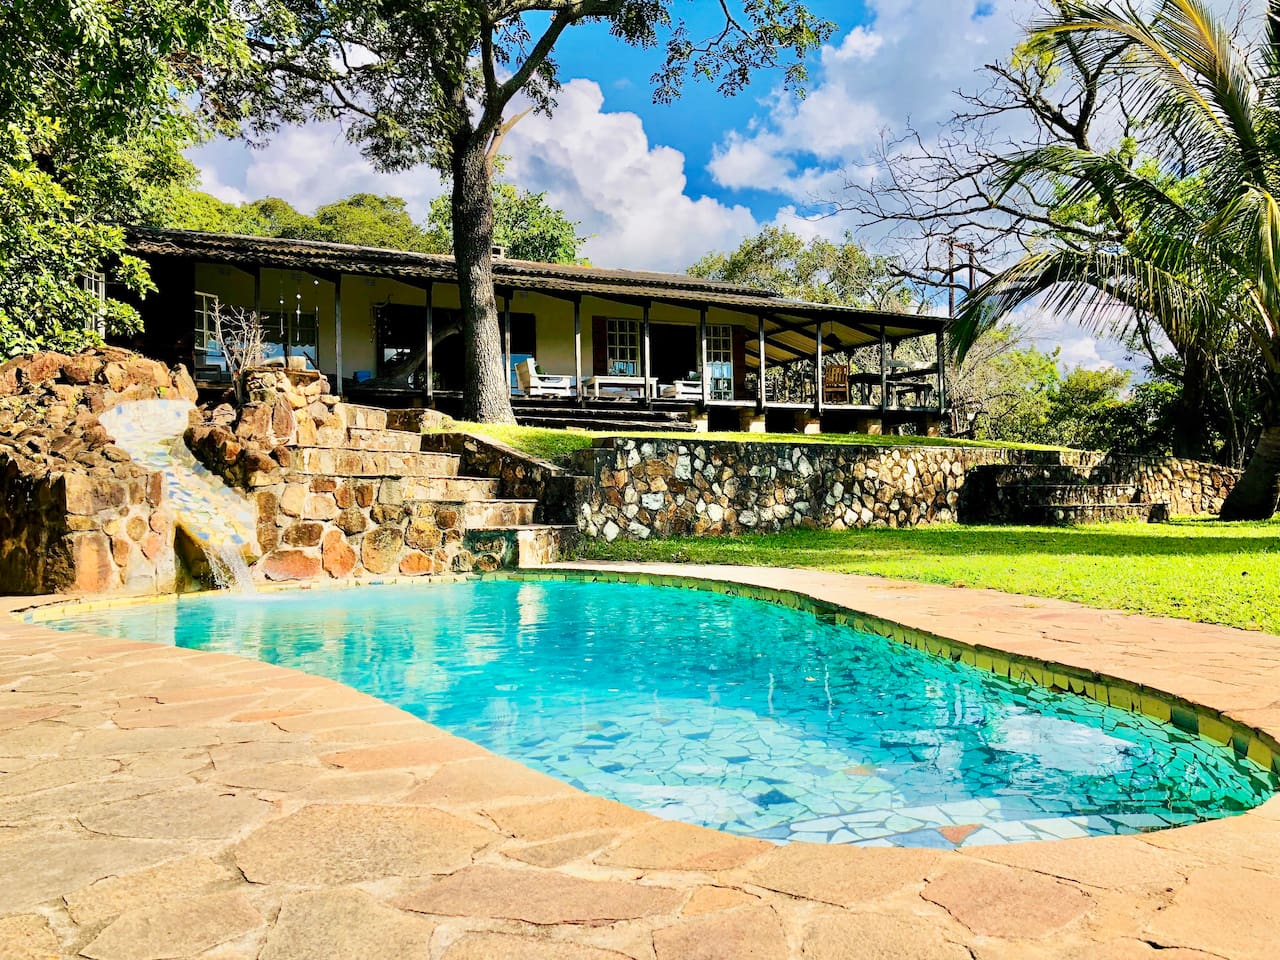 Relax by the pool or on the breezy veranda